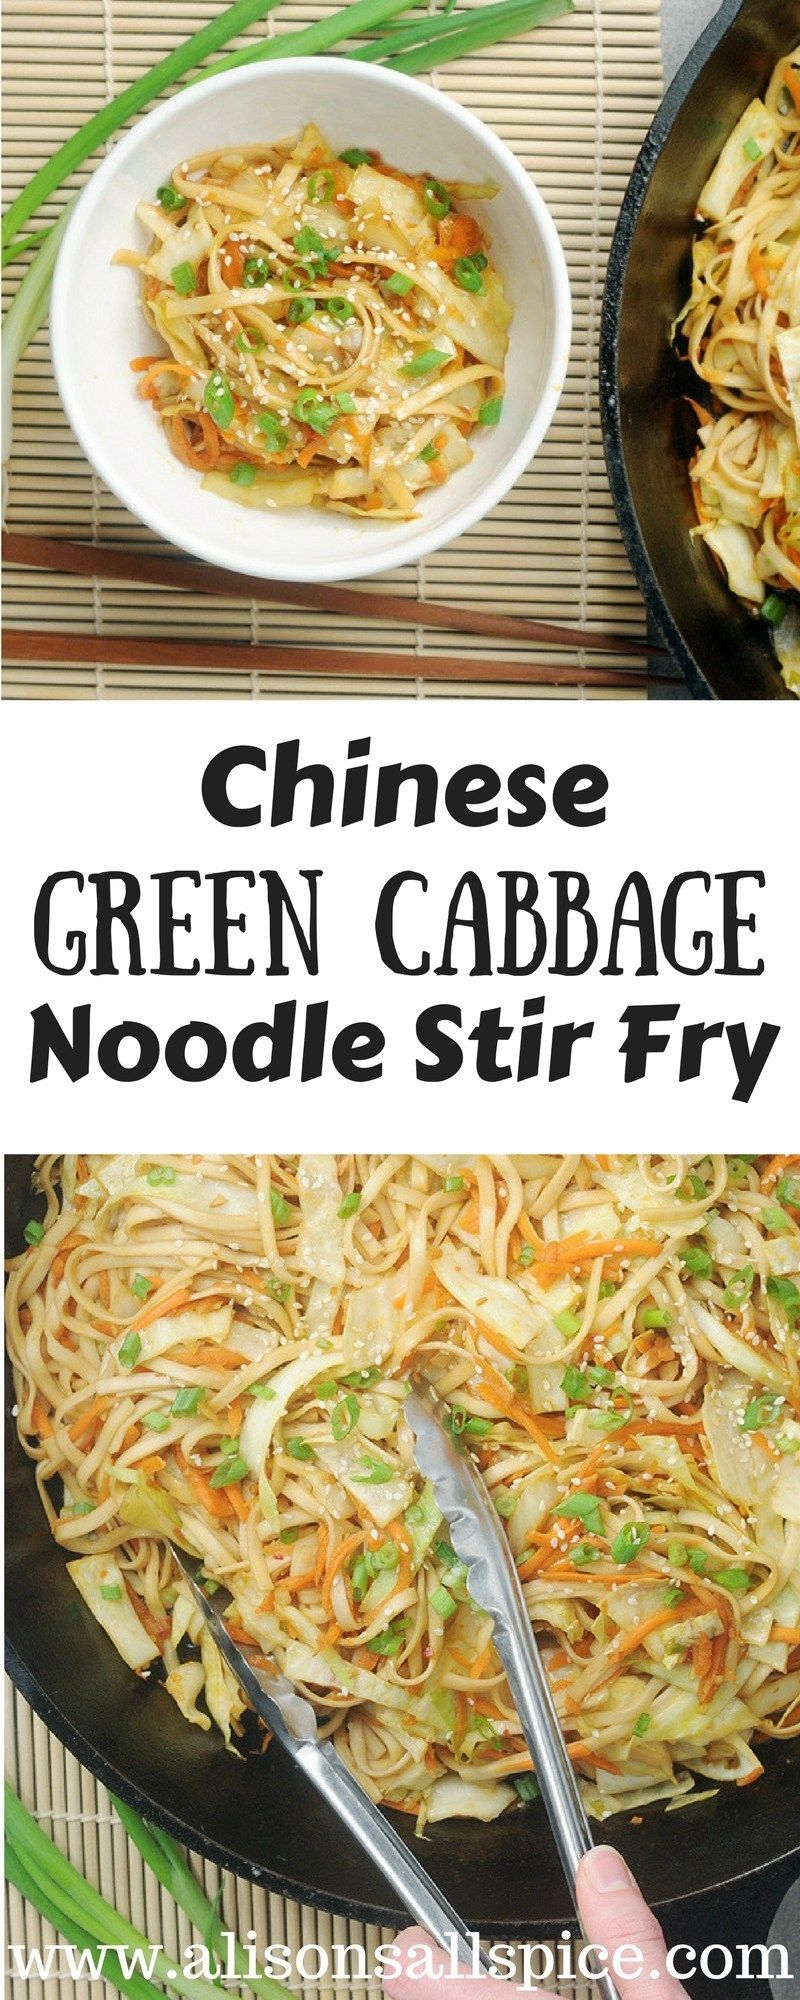 Chinese Green Cabbage Noodle Stir Fry #healthystirfry